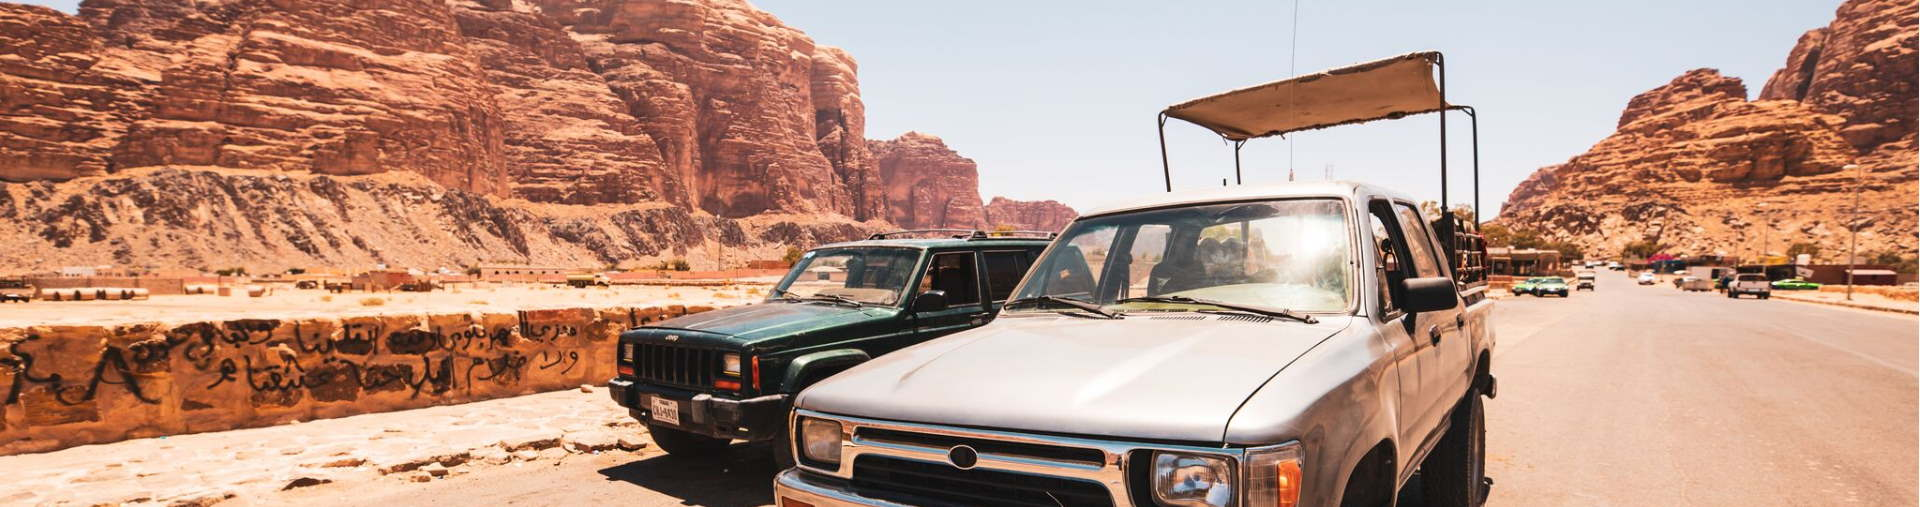 Jeep Safari of Wadi Rum